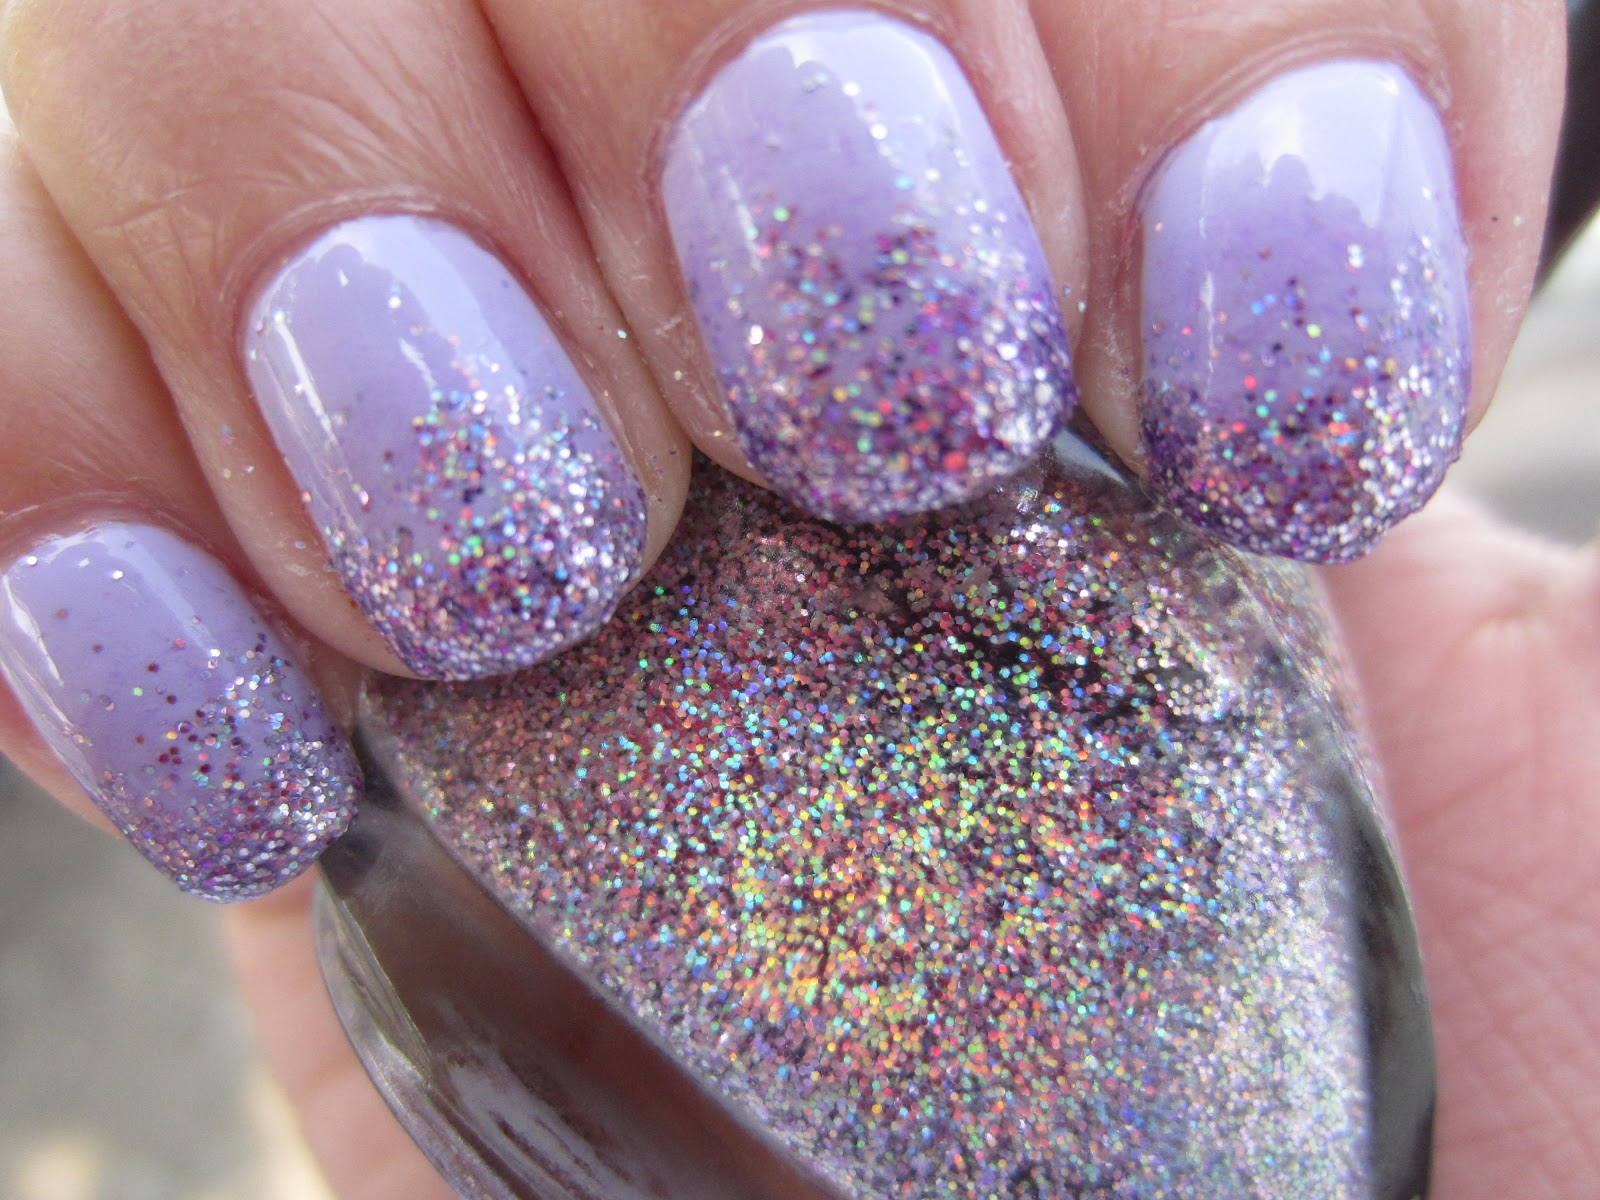 Lilac Acrylic Nail Designs HD Wallpaper